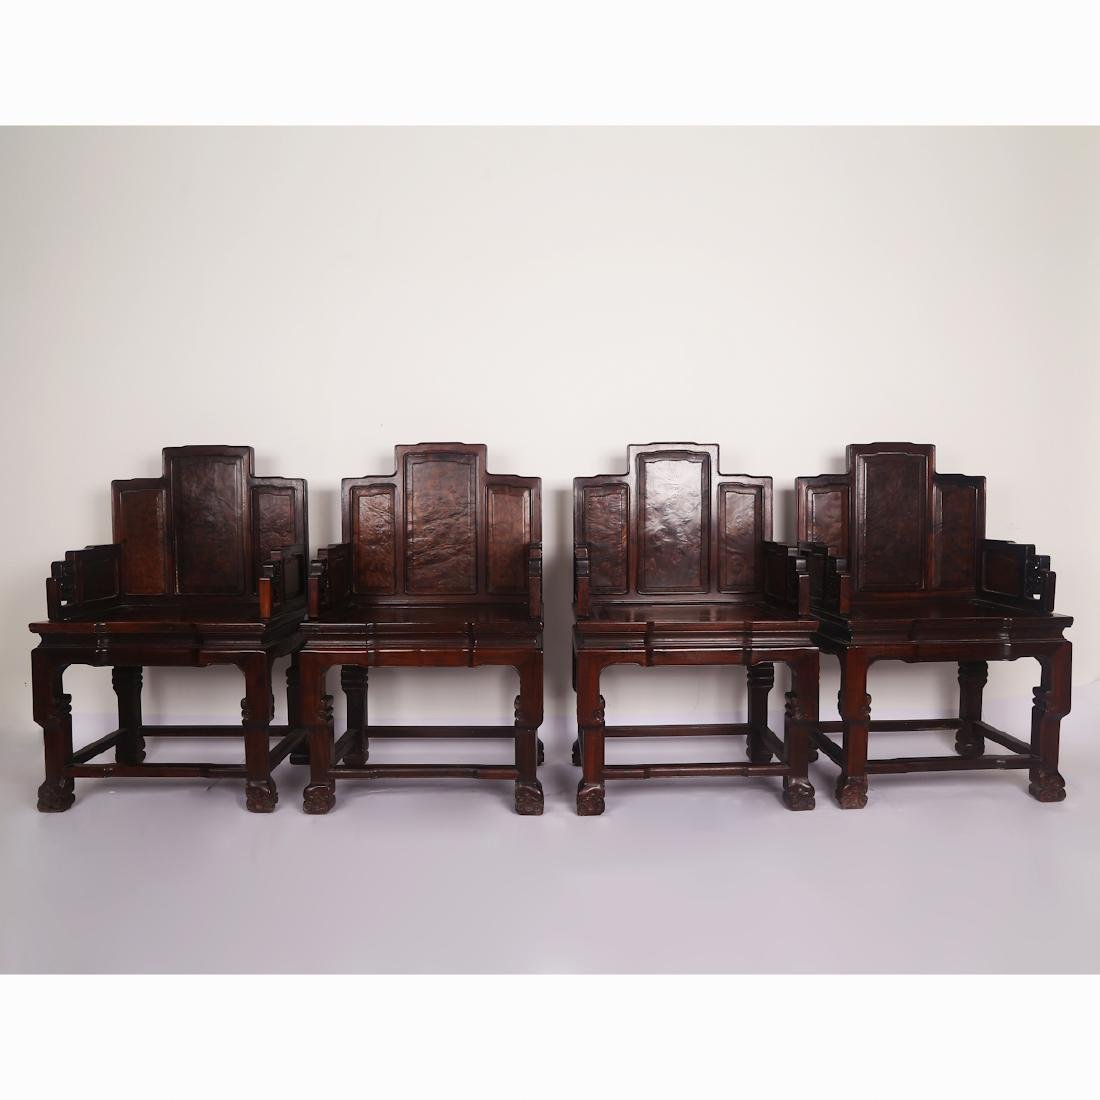 CHINESE ROSEWOOD CHAIR SET